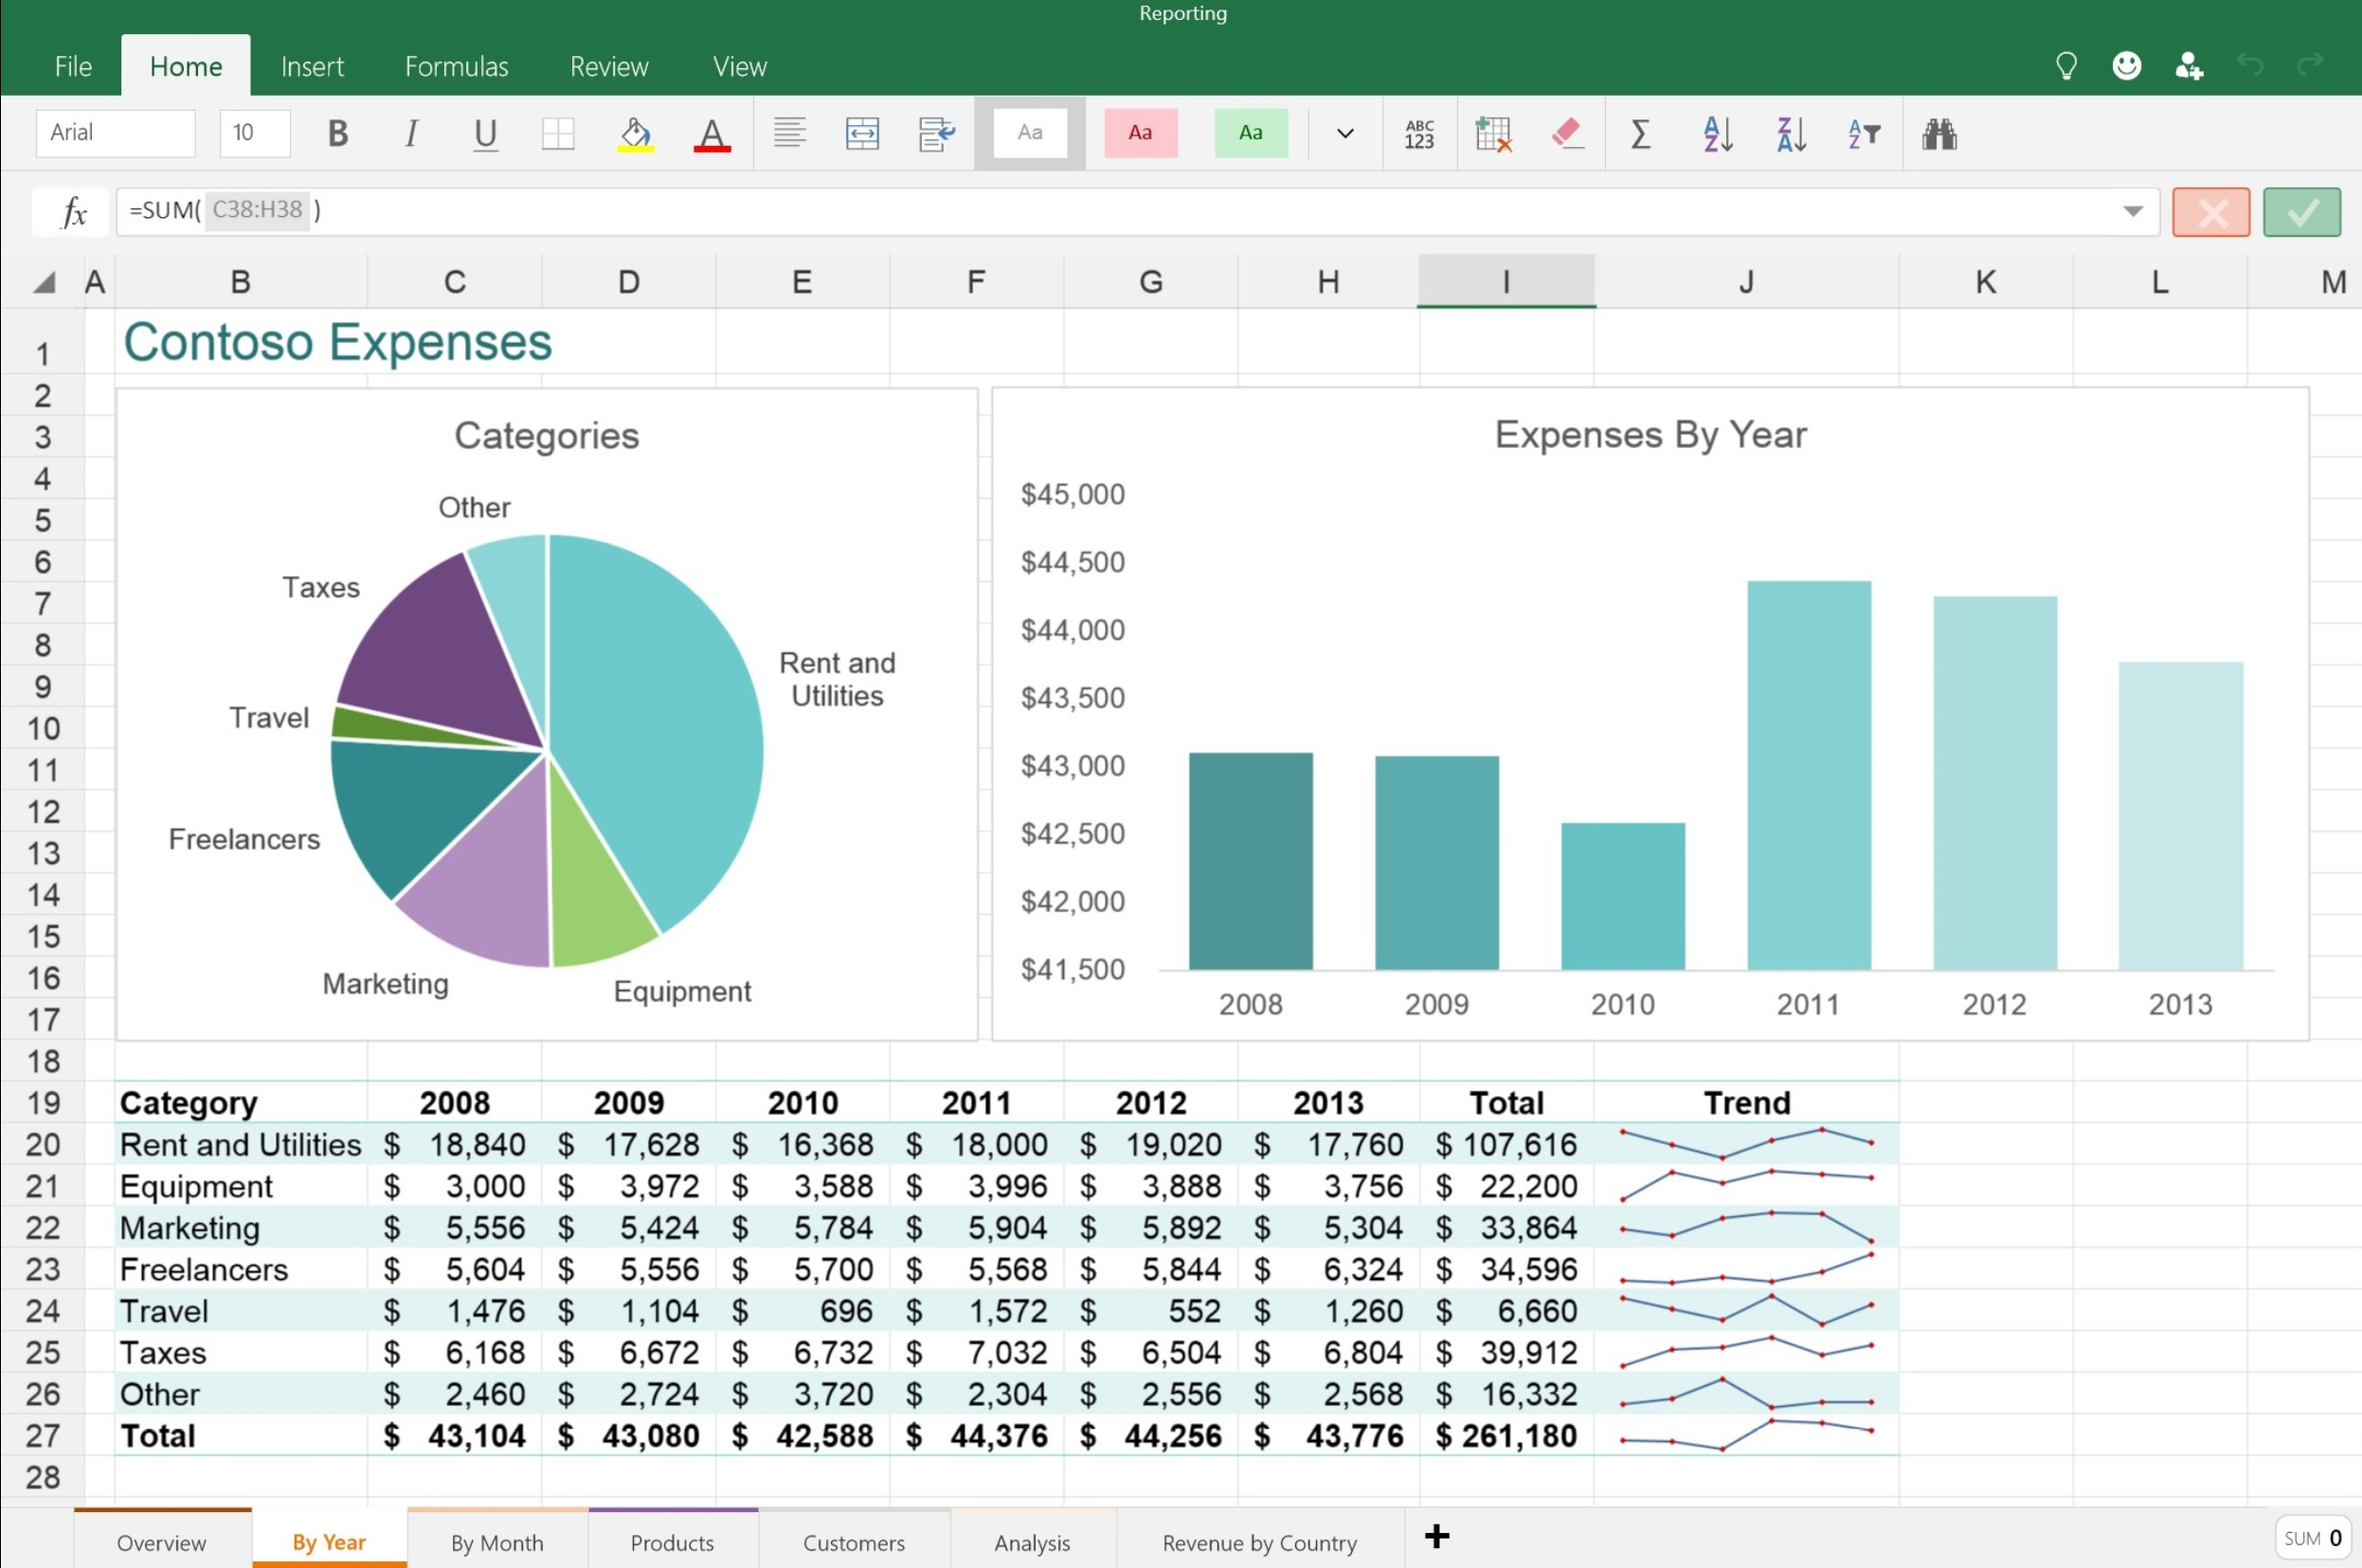 Ediblewildsus  Splendid Features Available In The New Word Excel And Powerpoint Apps For  With Handsome Excel Touch App  With Extraordinary Excel Multiple Vlookup Also Analysis Toolpak Excel  In Addition Excel Creating A Drop Down List And Excel Interactive Dashboard As Well As Excel Vba Regular Expression Additionally Excel Vba Wait Function From Mspowerusercom With Ediblewildsus  Handsome Features Available In The New Word Excel And Powerpoint Apps For  With Extraordinary Excel Touch App  And Splendid Excel Multiple Vlookup Also Analysis Toolpak Excel  In Addition Excel Creating A Drop Down List From Mspowerusercom